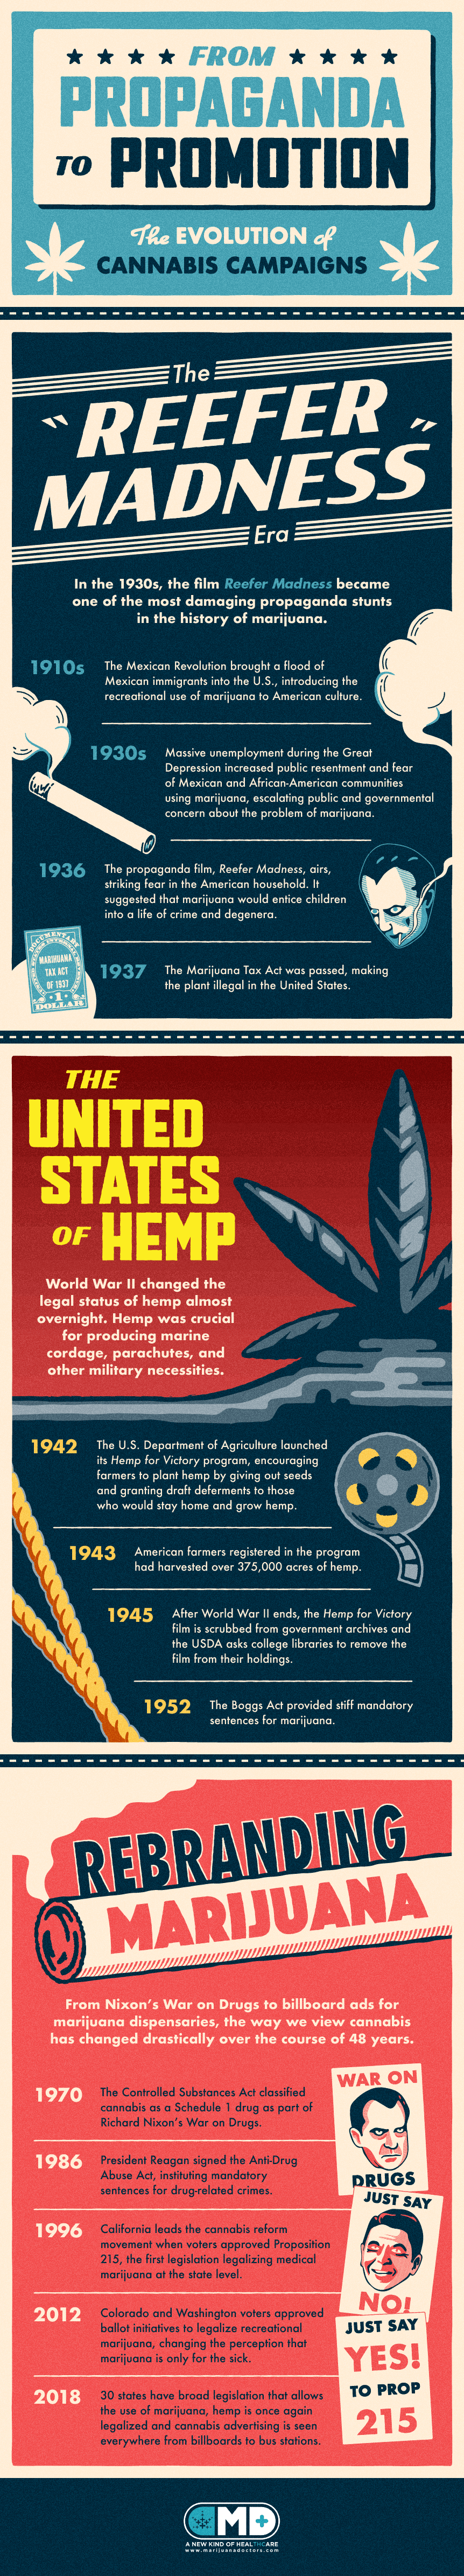 A Century of 'Reefer Madness': Evolution of Cannabis Campaigns - Infographic